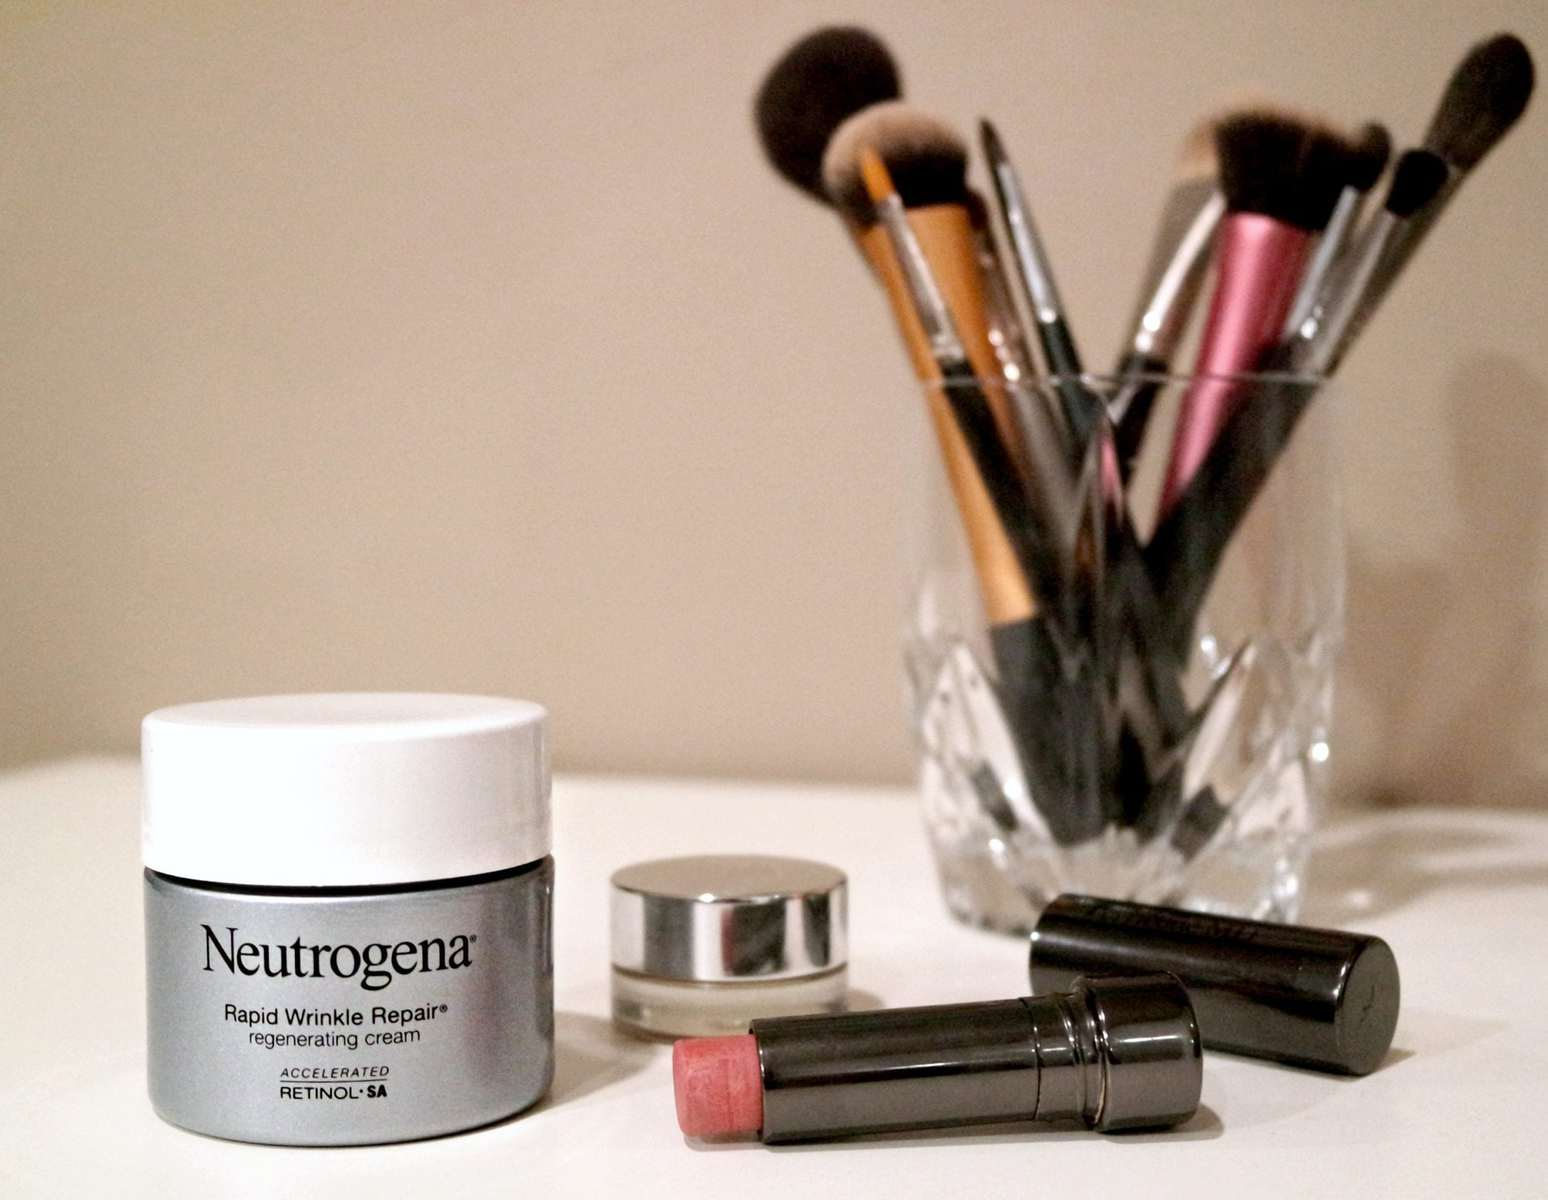 Review Neutrogena Rapid Wrinkle Repair Regenerating Cream